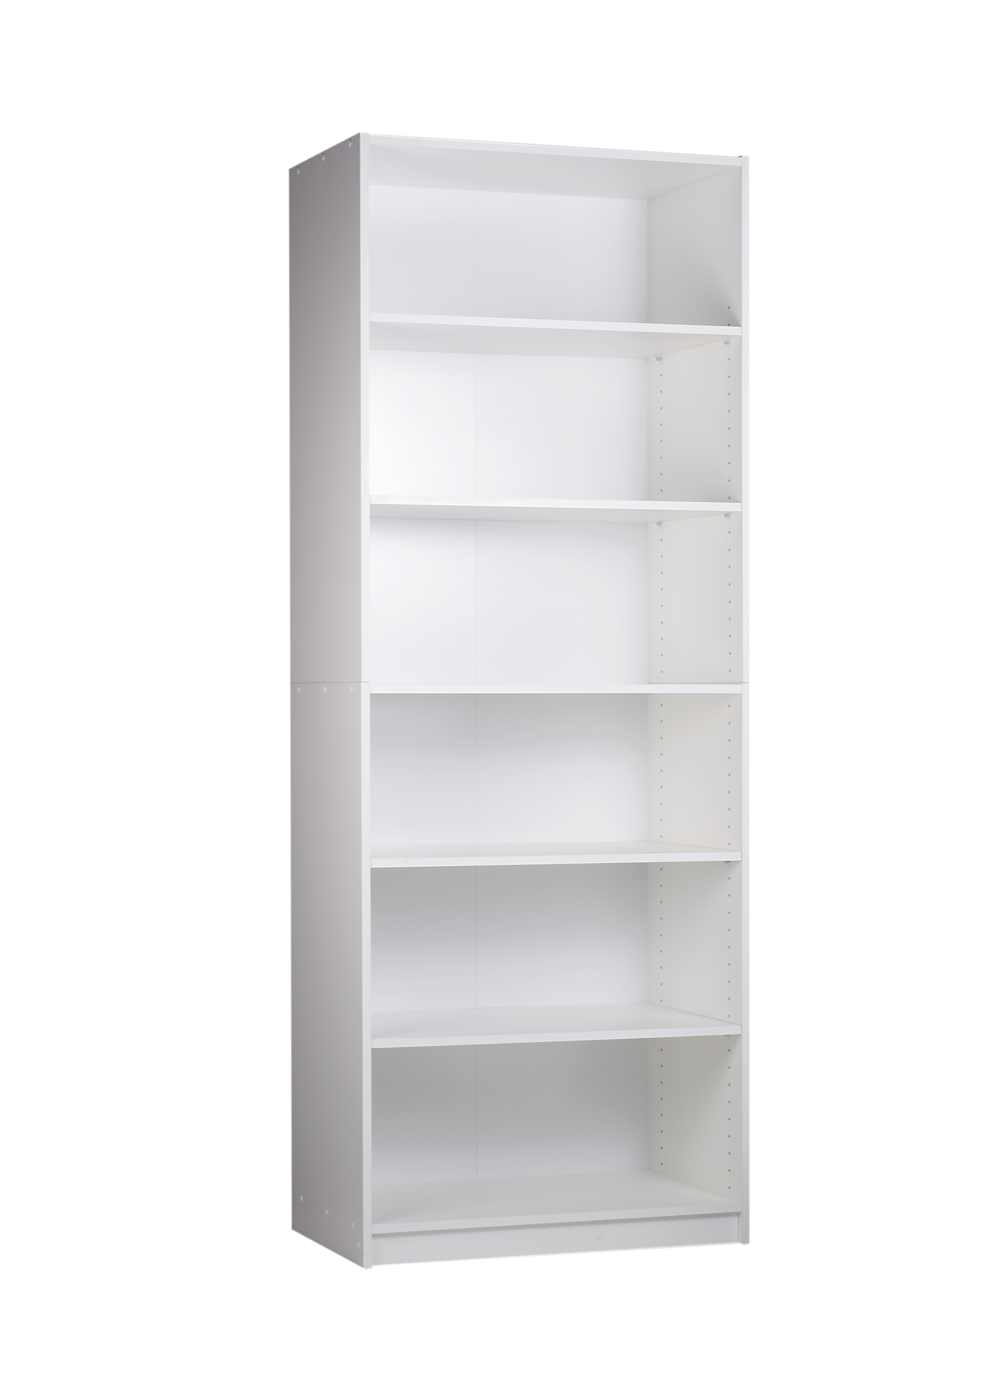 EXC-750 Shelf.png